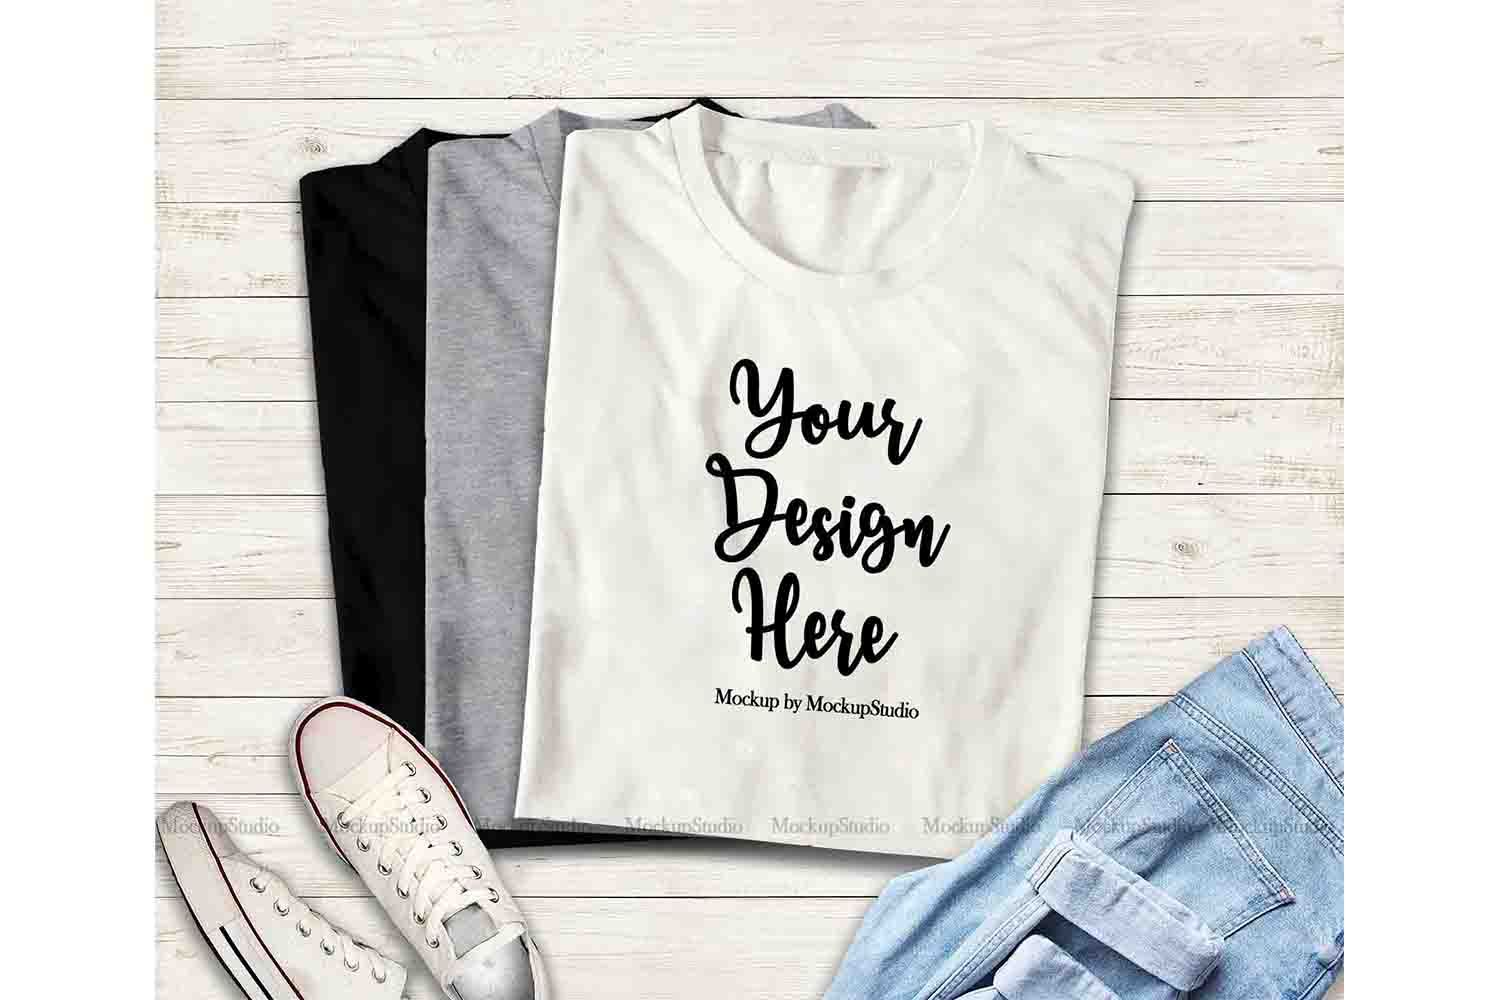 Download Multiple Colors Folded Tshirts Mockup Stacked Shirts 184032 Clothing Design Bundles In 2021 Design Mockup Free Psd Template Free Free Psd Design